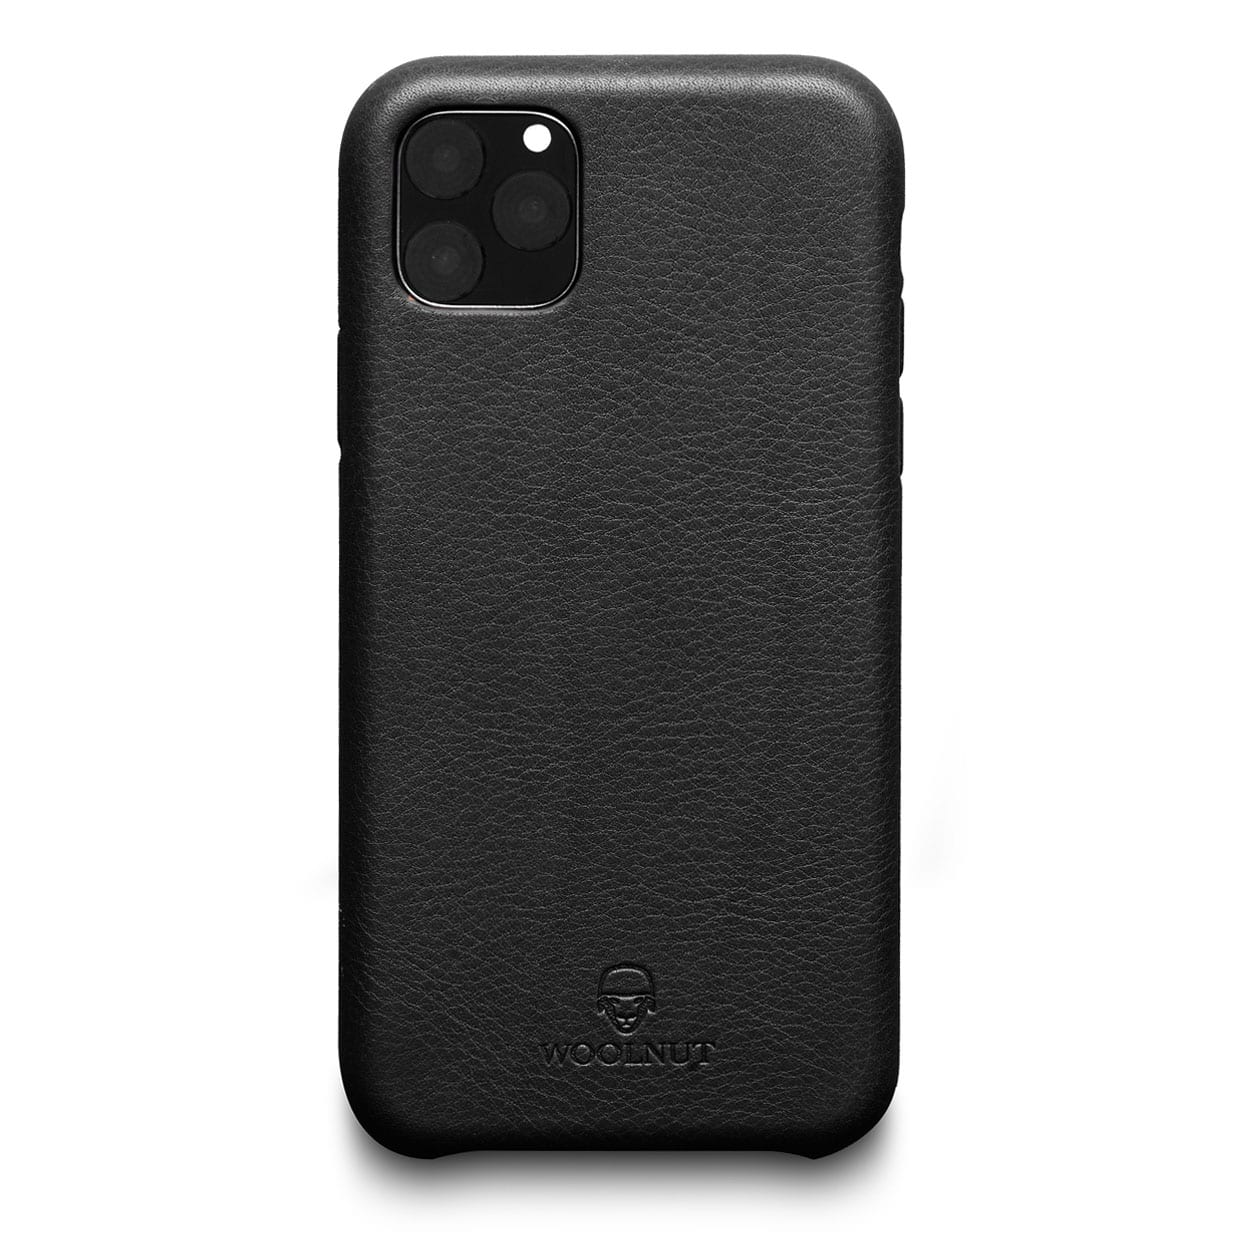 Woolnut iPhone 11 Pro Max Case - Black - Netnaturshop